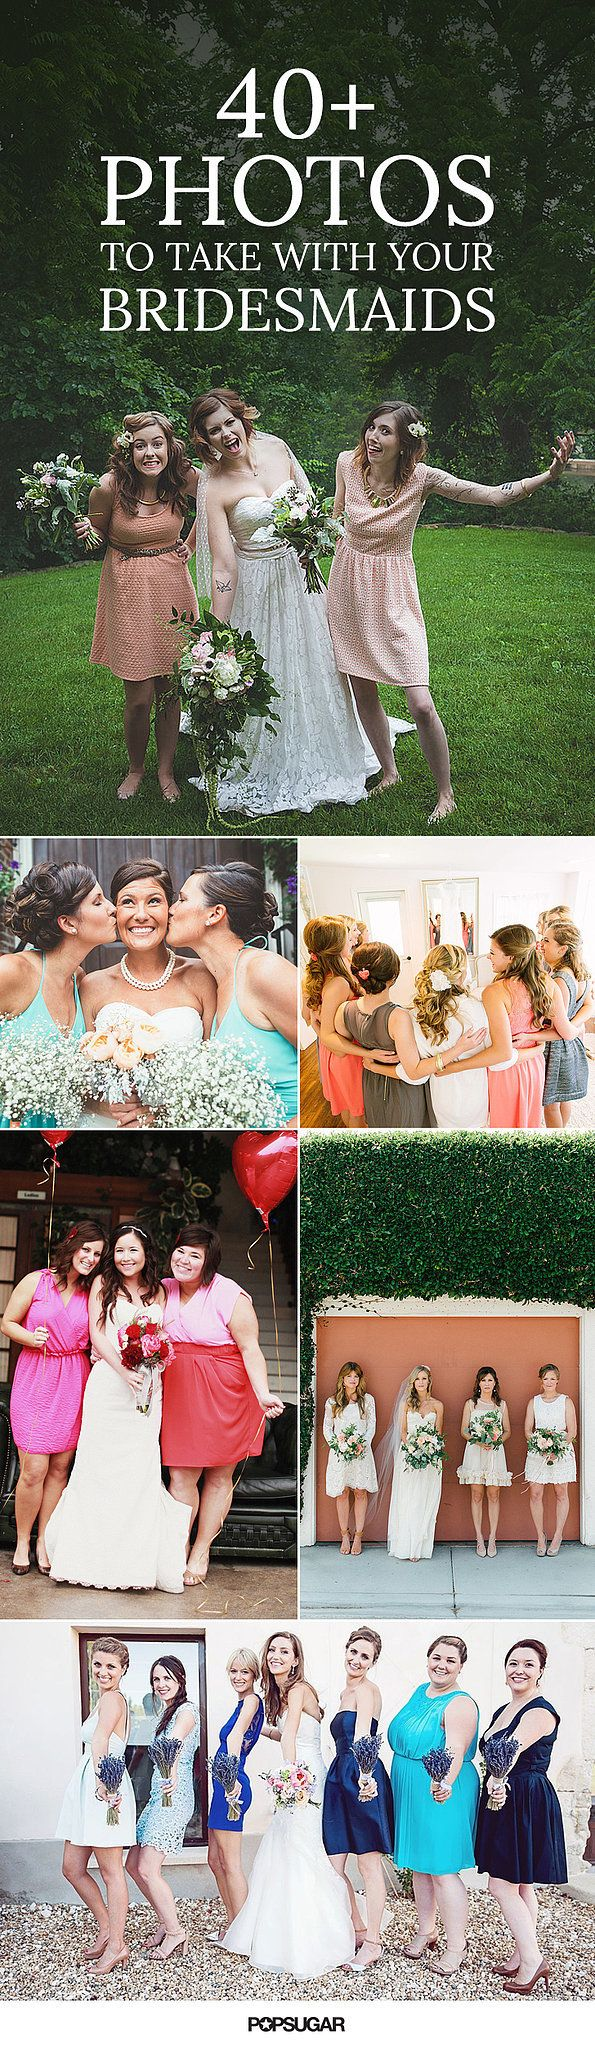 100+ Adorable Photos You Need to Take With Your Bridesmaids is part of Wedding - Since your bridesmaids are the closest women in your life, it would be strange to take nothing but stiff, posed photos with them on your wedding day  Instead